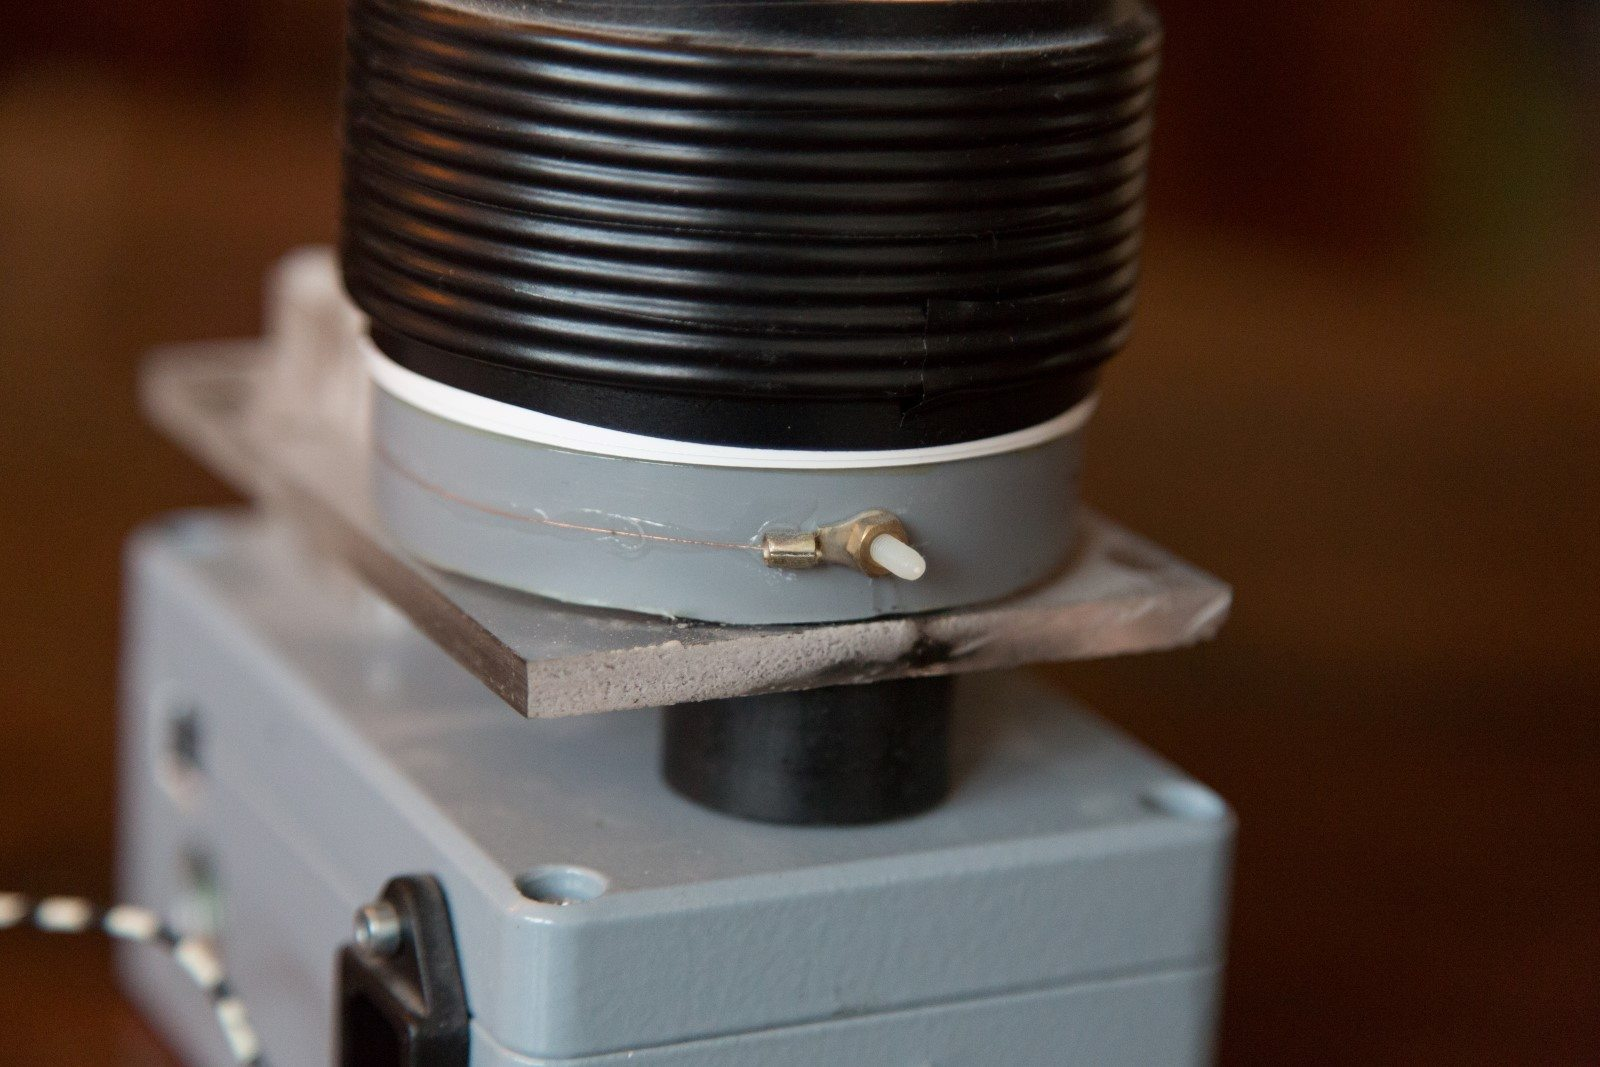 Tesla coil SSTC primary coil